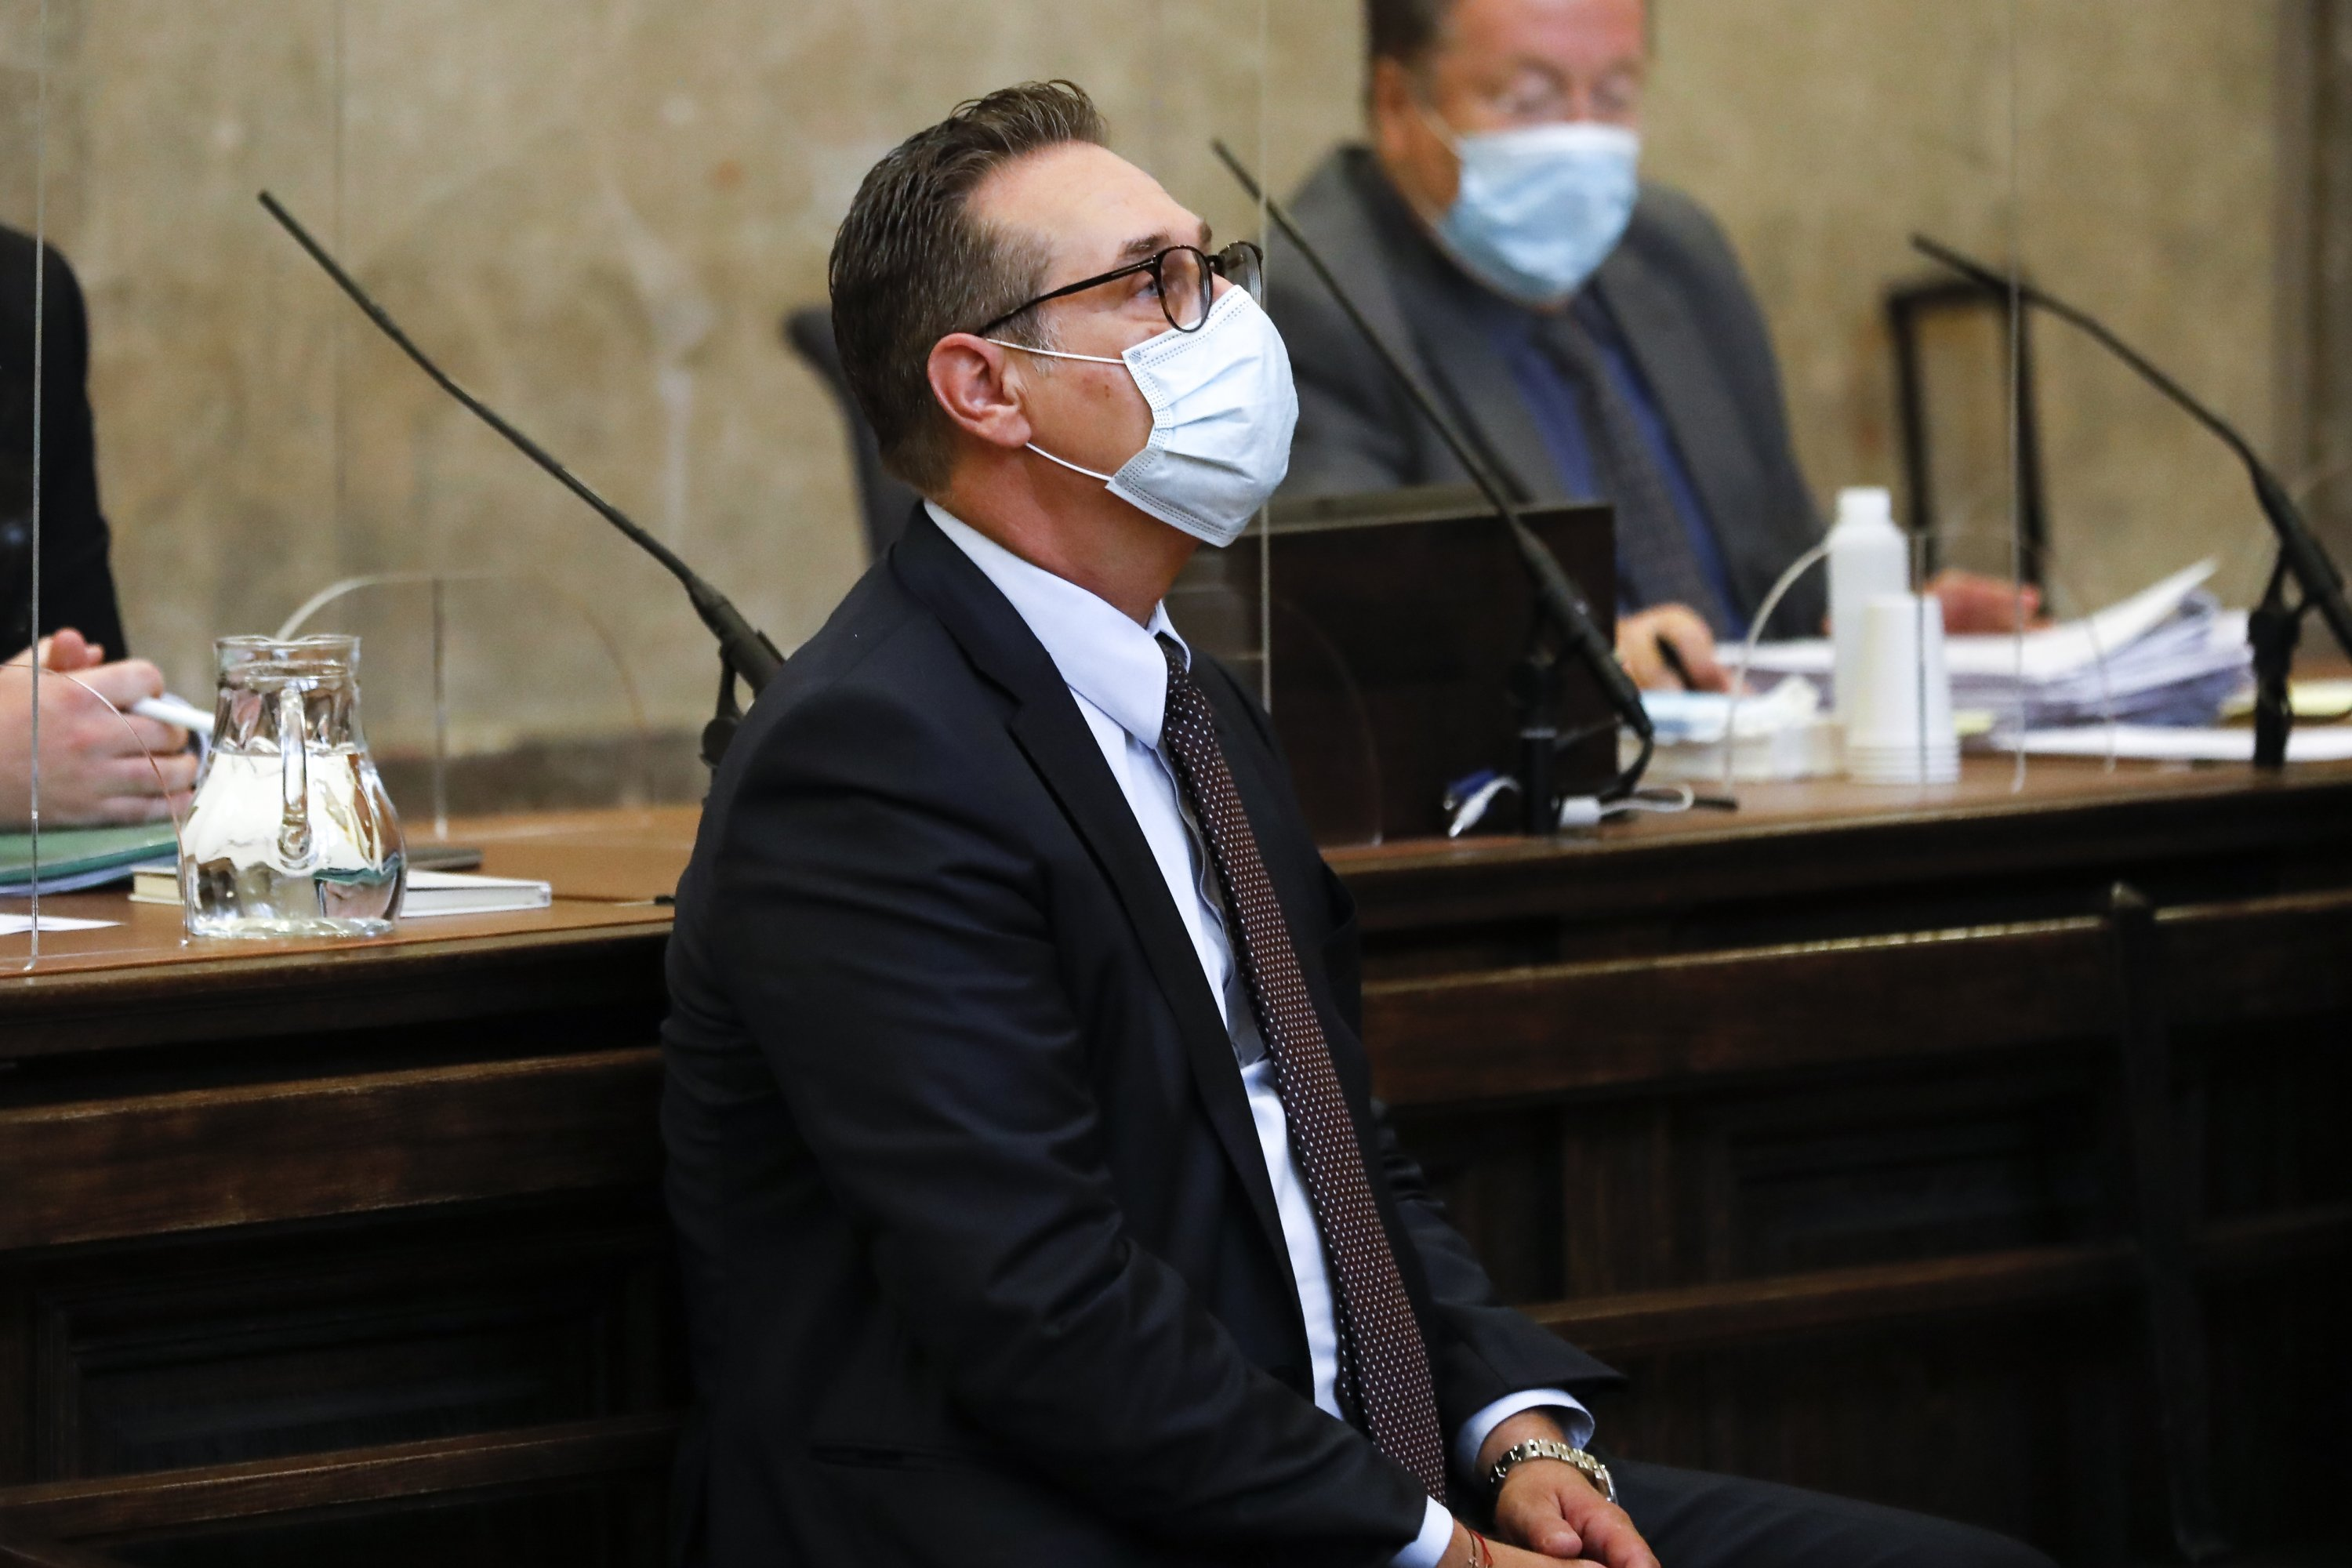 Former Freedom Party (FPO) leader Heinz-Christian Strache waits for the start of a trial in a courtroom in Vienna, Austria, July 9, 2021. (AP Photo)